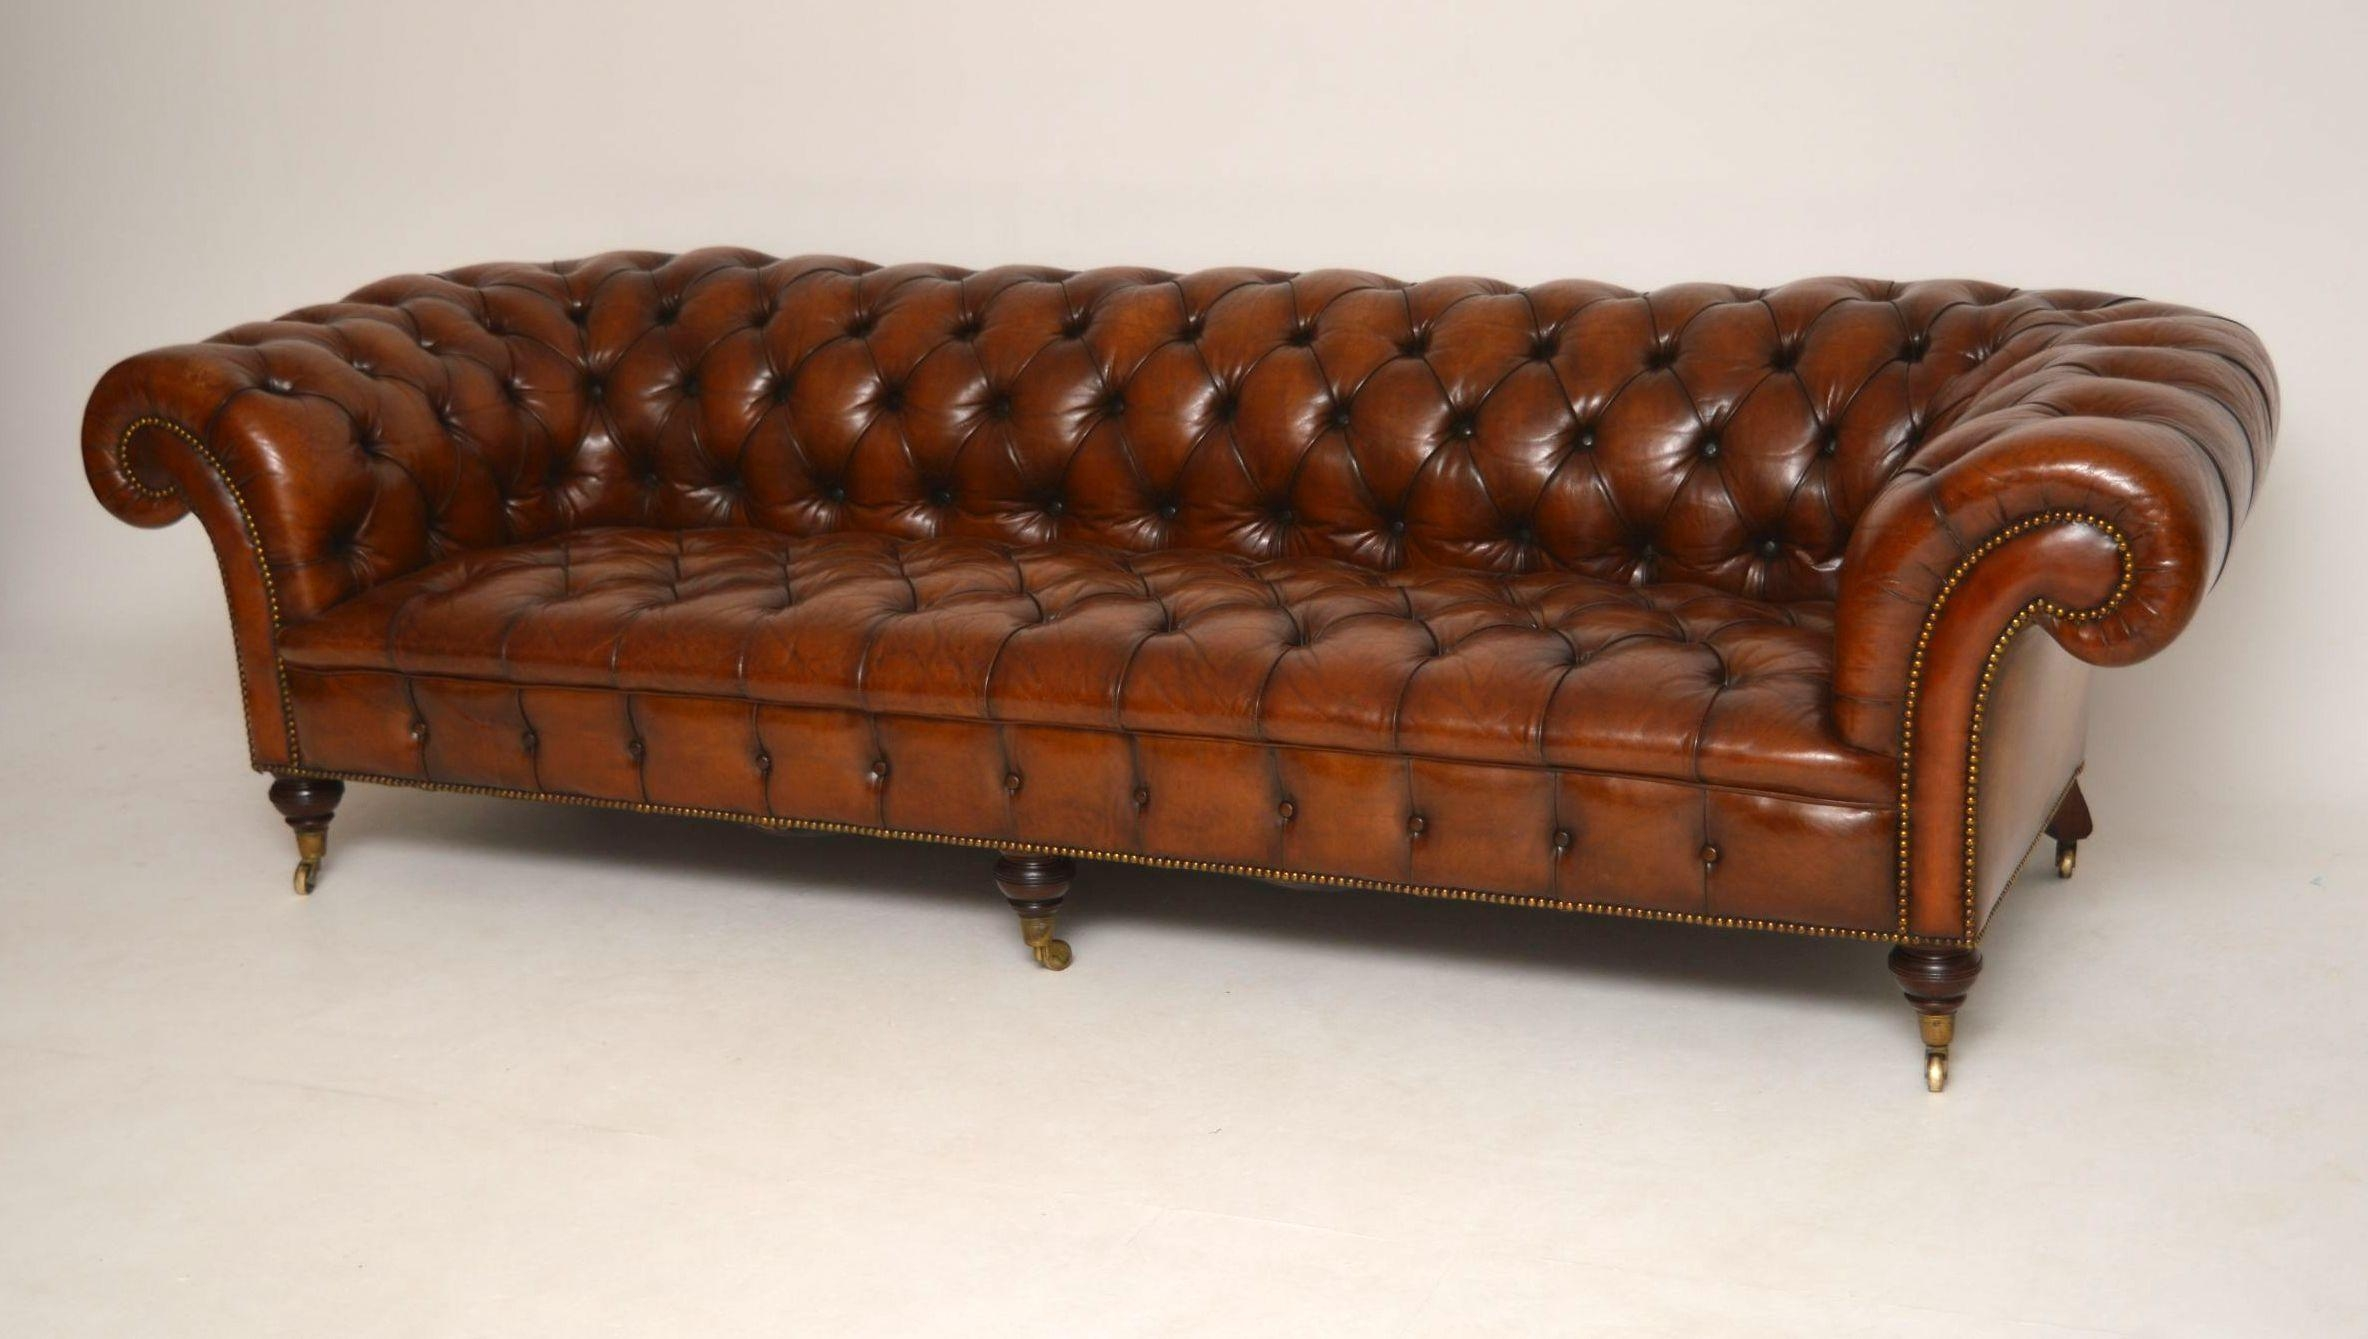 Storage Antique Chesterfield Sofas 24 With Antique Chesterfield For Vintage Chesterfield Sofas (Image 7 of 20)